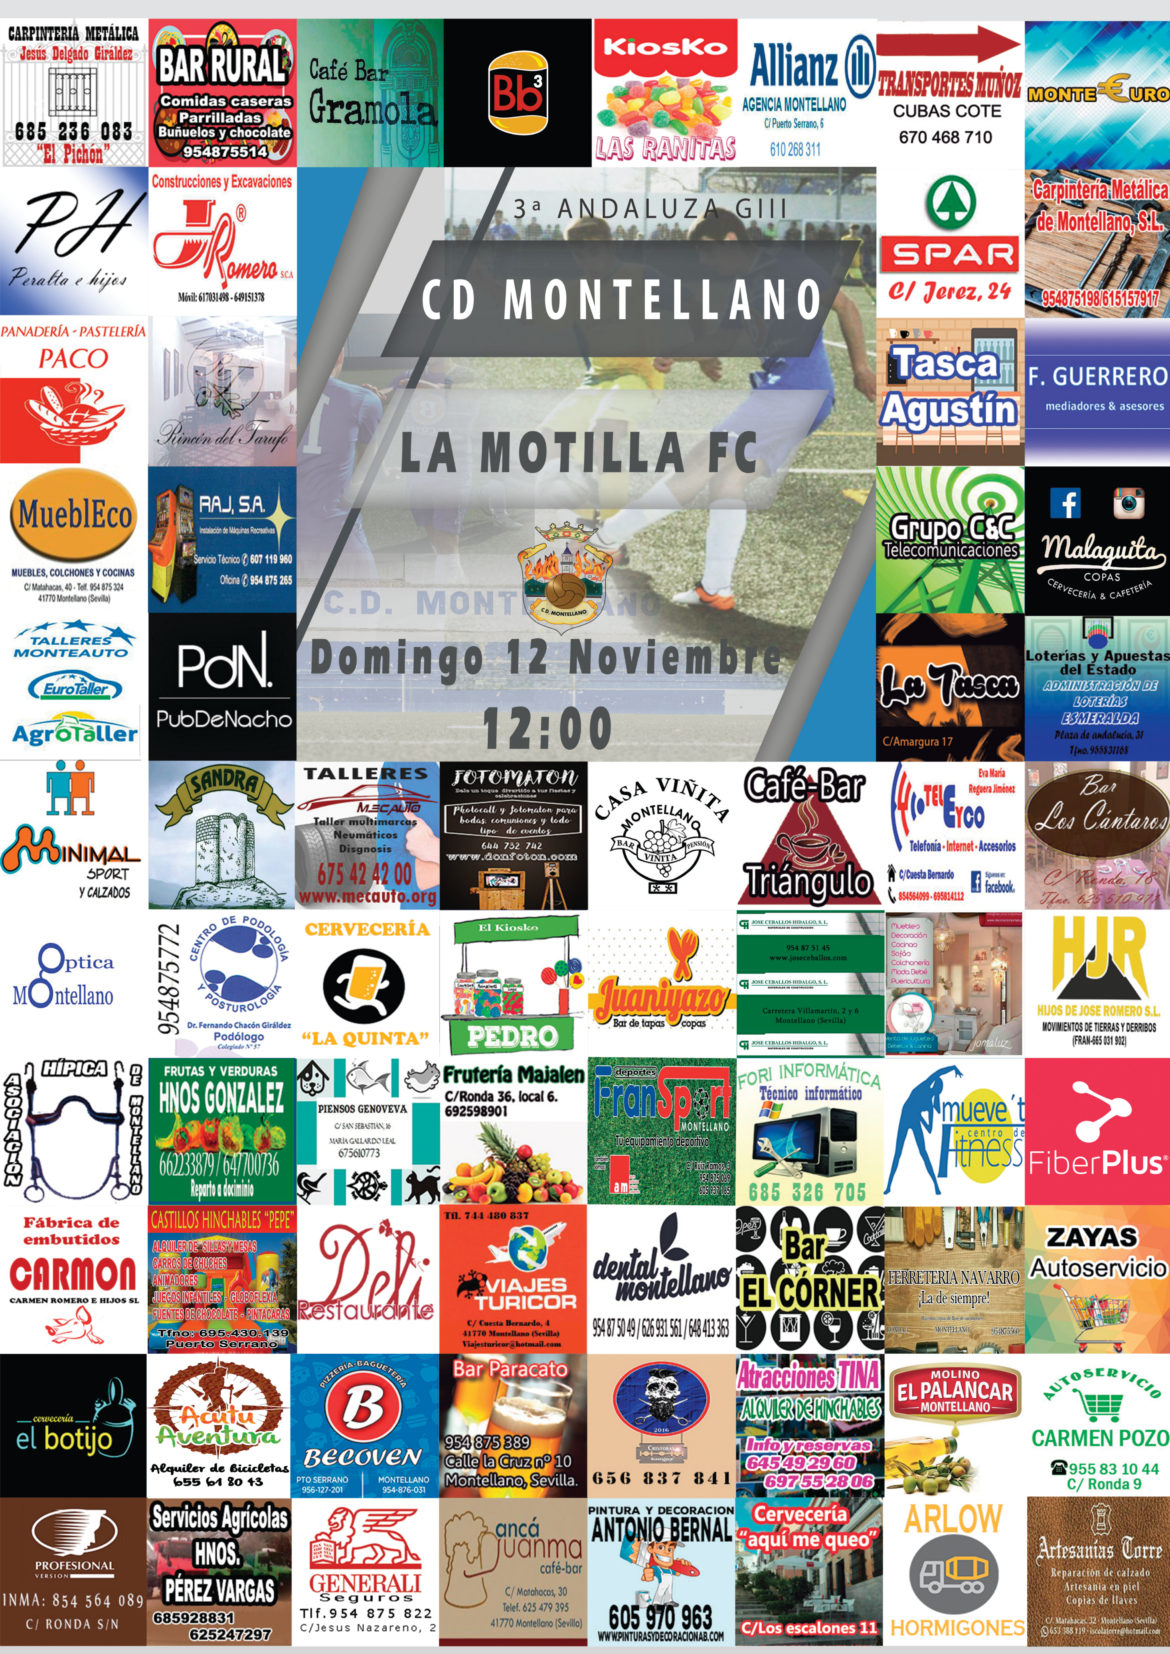 Cartel CD Montellano - La Motilla